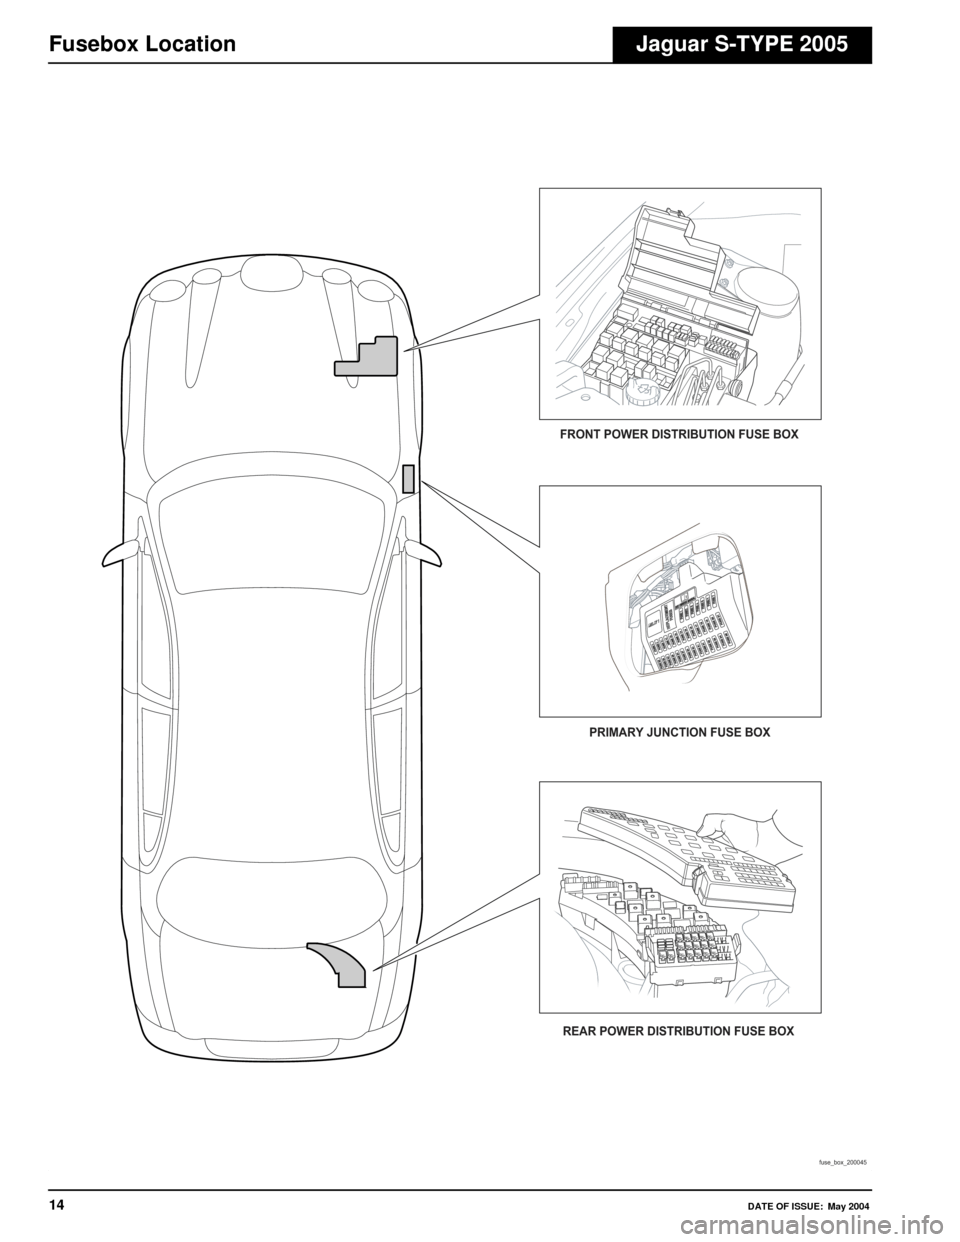 JAGUAR S TYPE 2005 1.G Electrical Manual